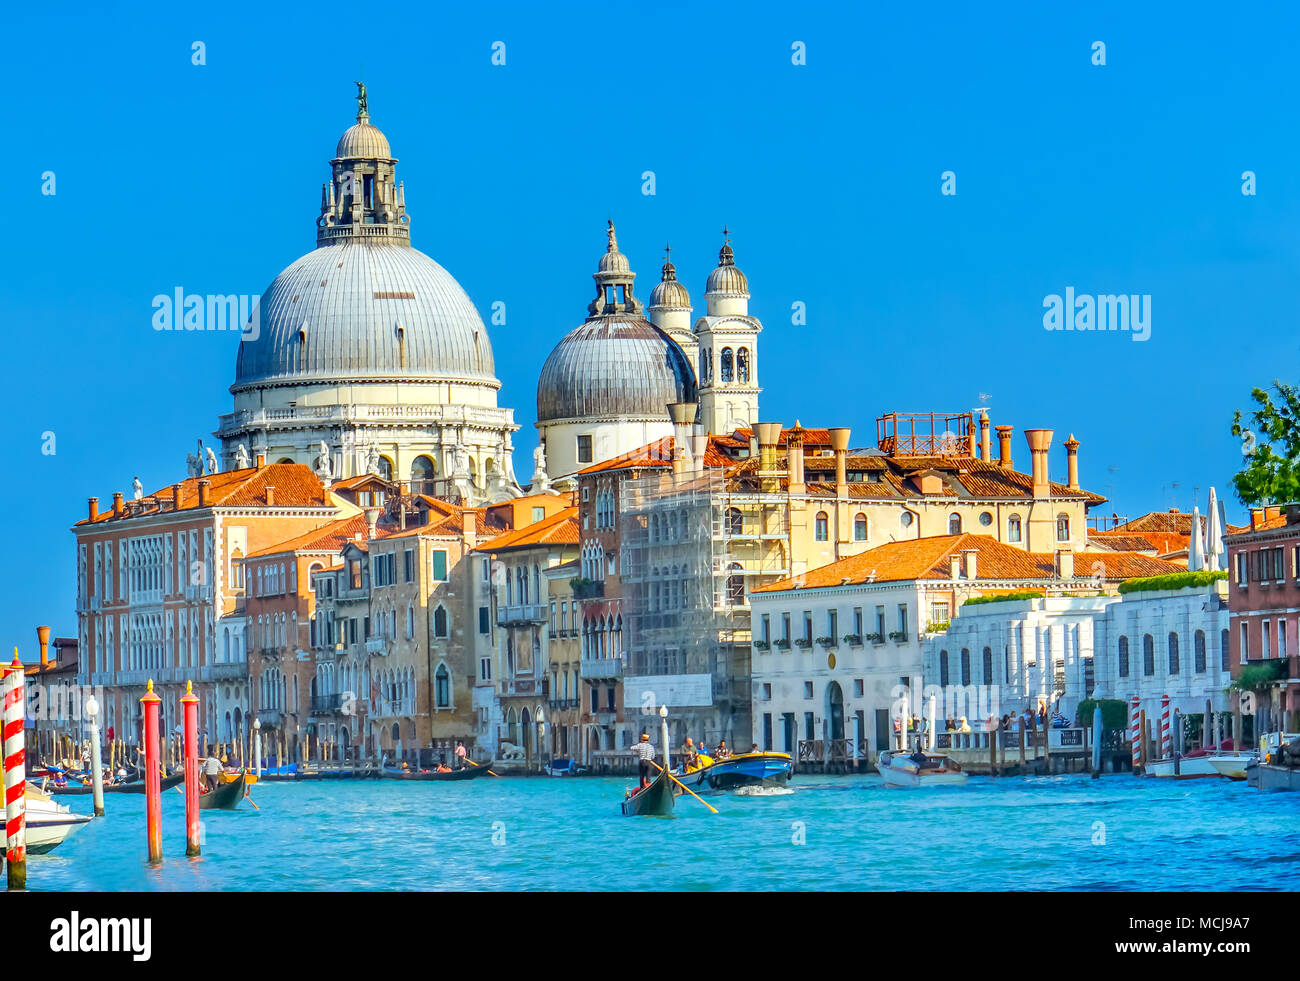 Grand Canal Santa Maria della Salute Church from Ponte Academia Bridge Gondolas Venice Italy Stock Photo